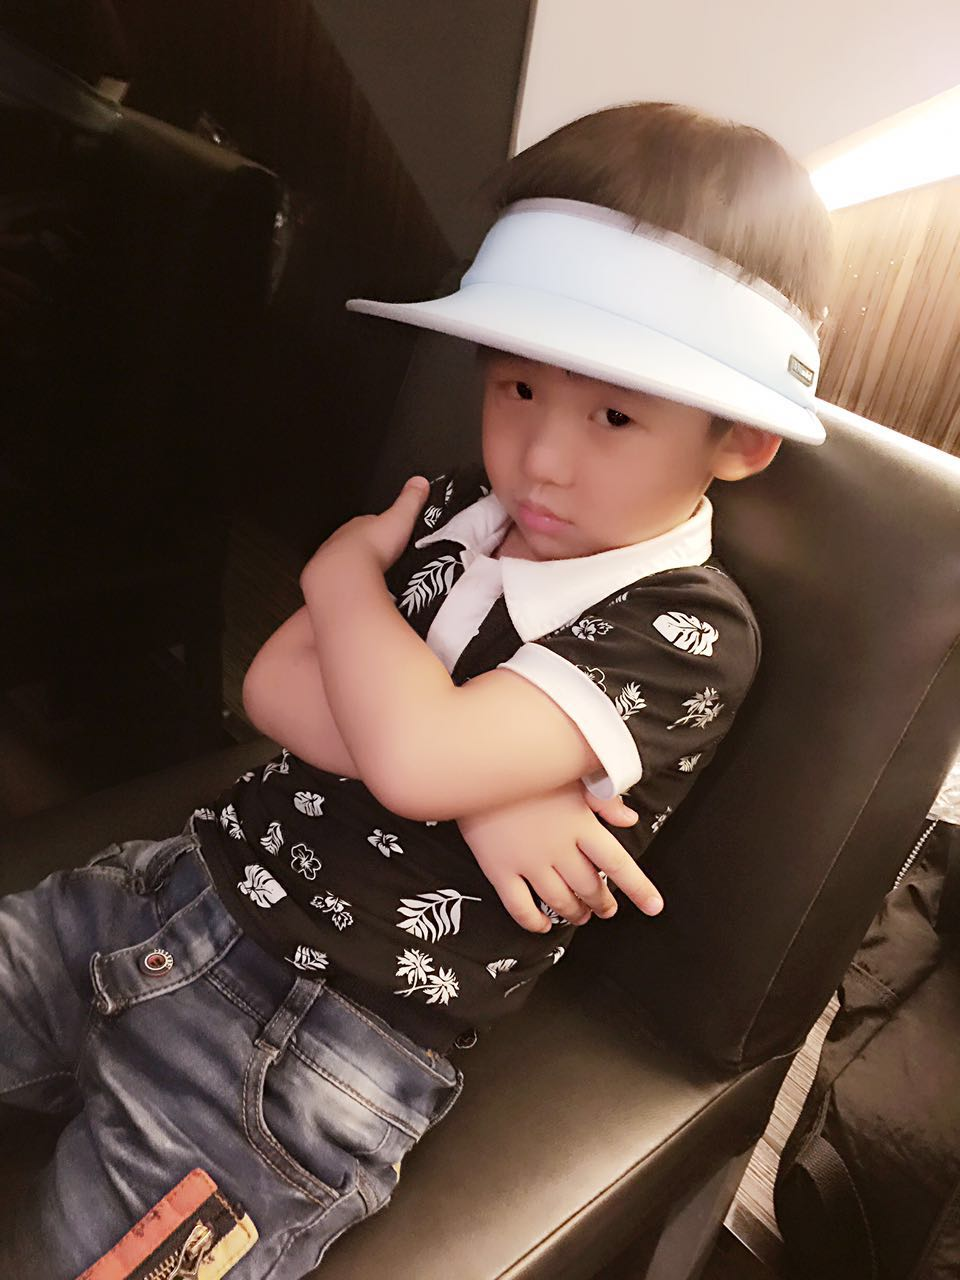 be6cd9dda2302 ... hat parent-child cap. Taiwan after the benefit hoii summer children s  leisure sun visor sunscreen anti-UV empty top. Zoom · lightbox moreview ·  lightbox ...